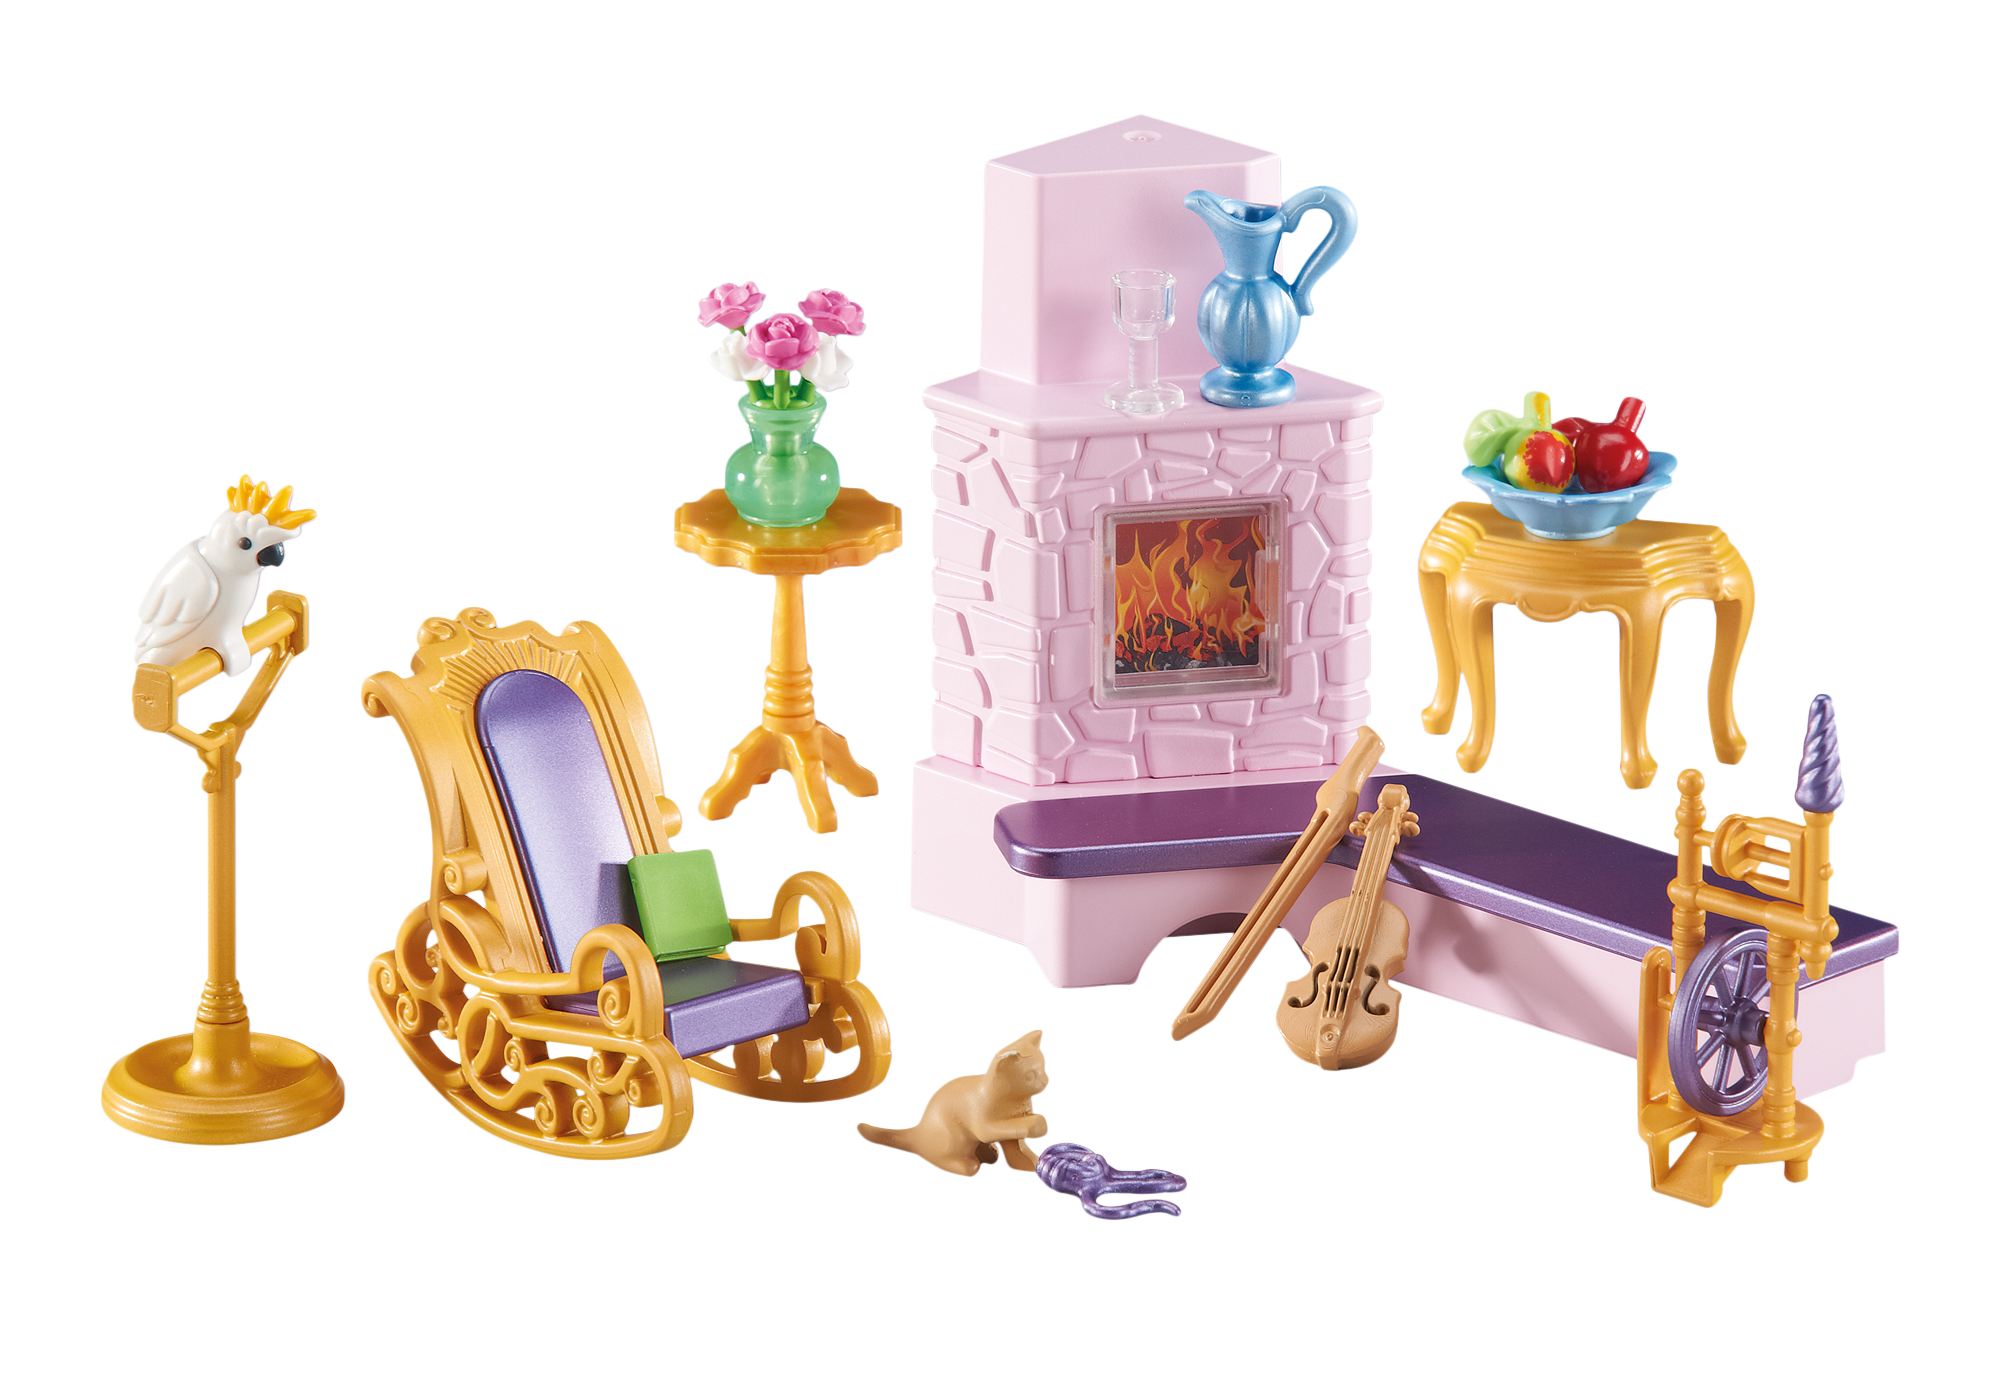 http://media.playmobil.com/i/playmobil/6520_product_detail/Aménagement pour salon royal